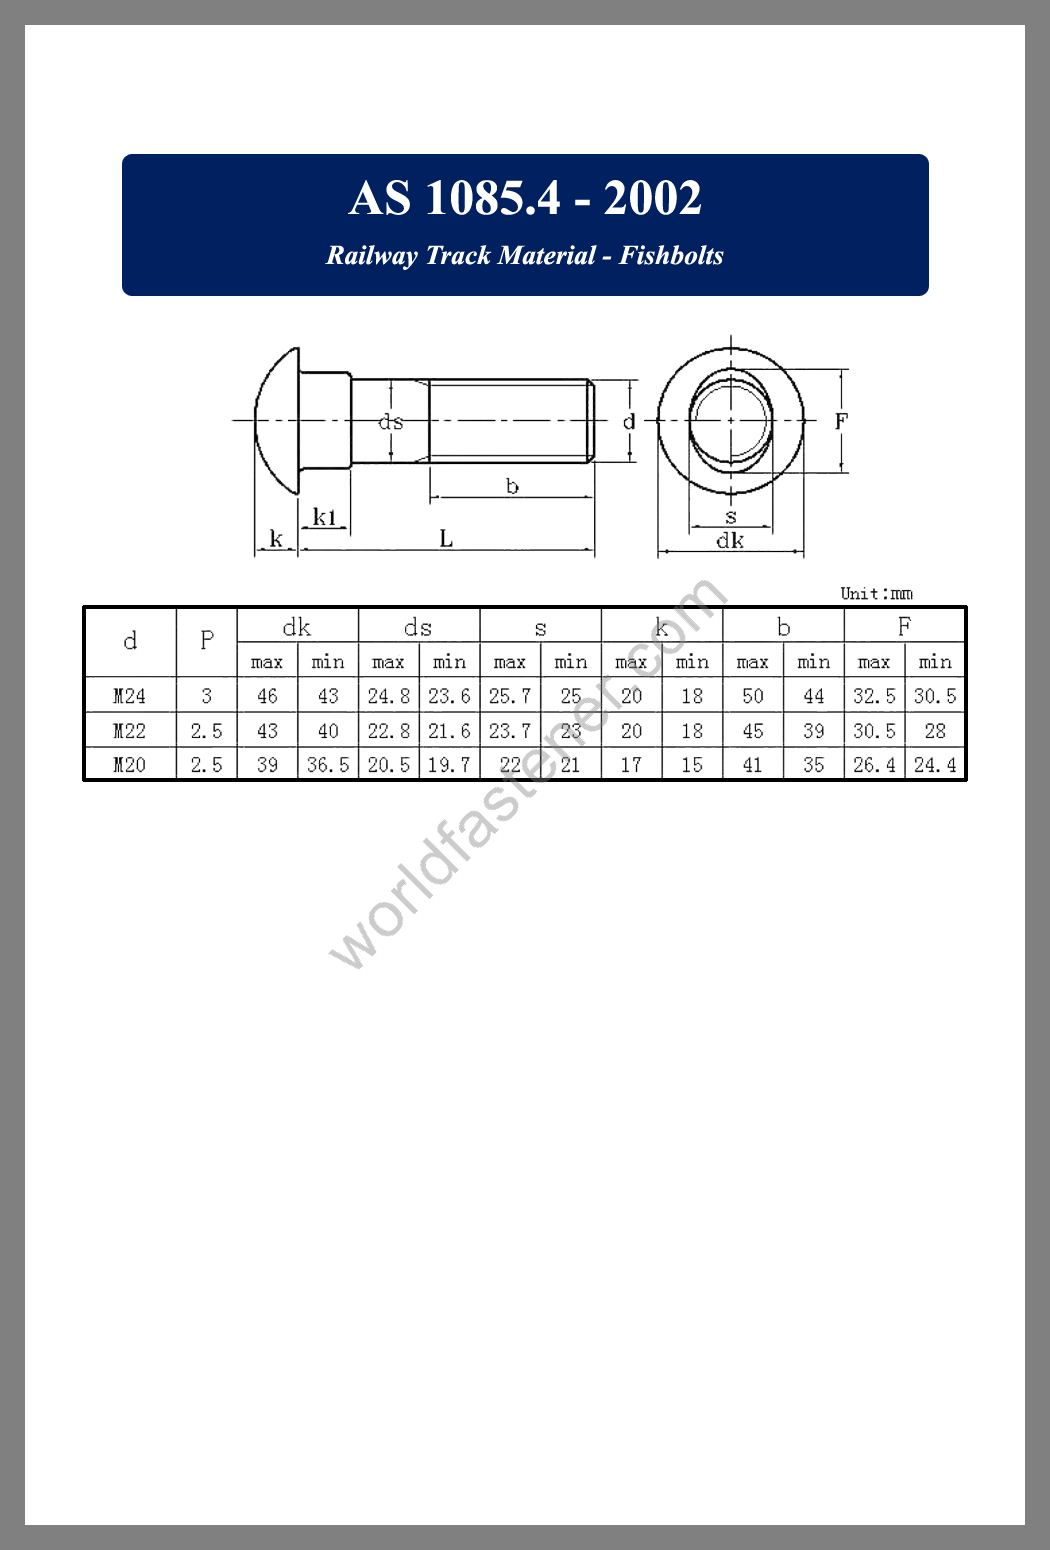 AS 1085.4, AS 1085.4 Railway Track Material Fishbolts, fastener, screw, bolt